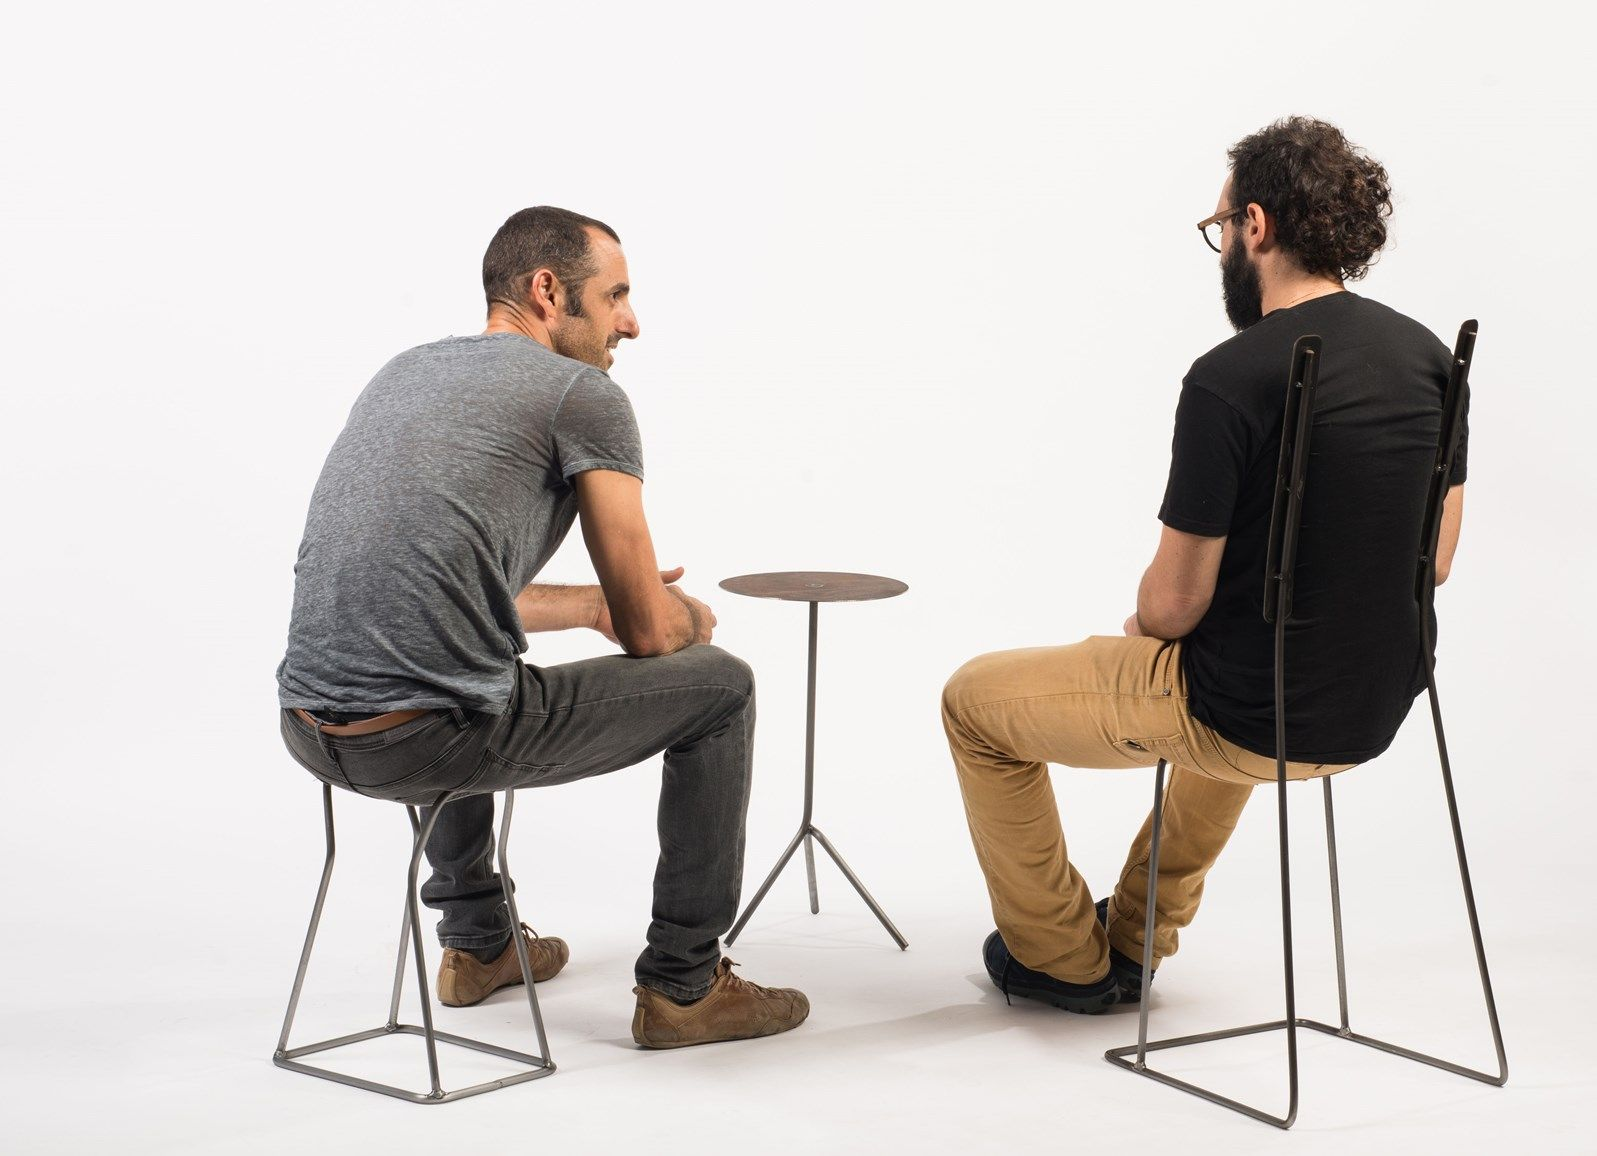 Neil Nenner and Lior Yamin sitting on the One-Line Stool and Two-Notes Chair. Photo by Shachar Fleischmann